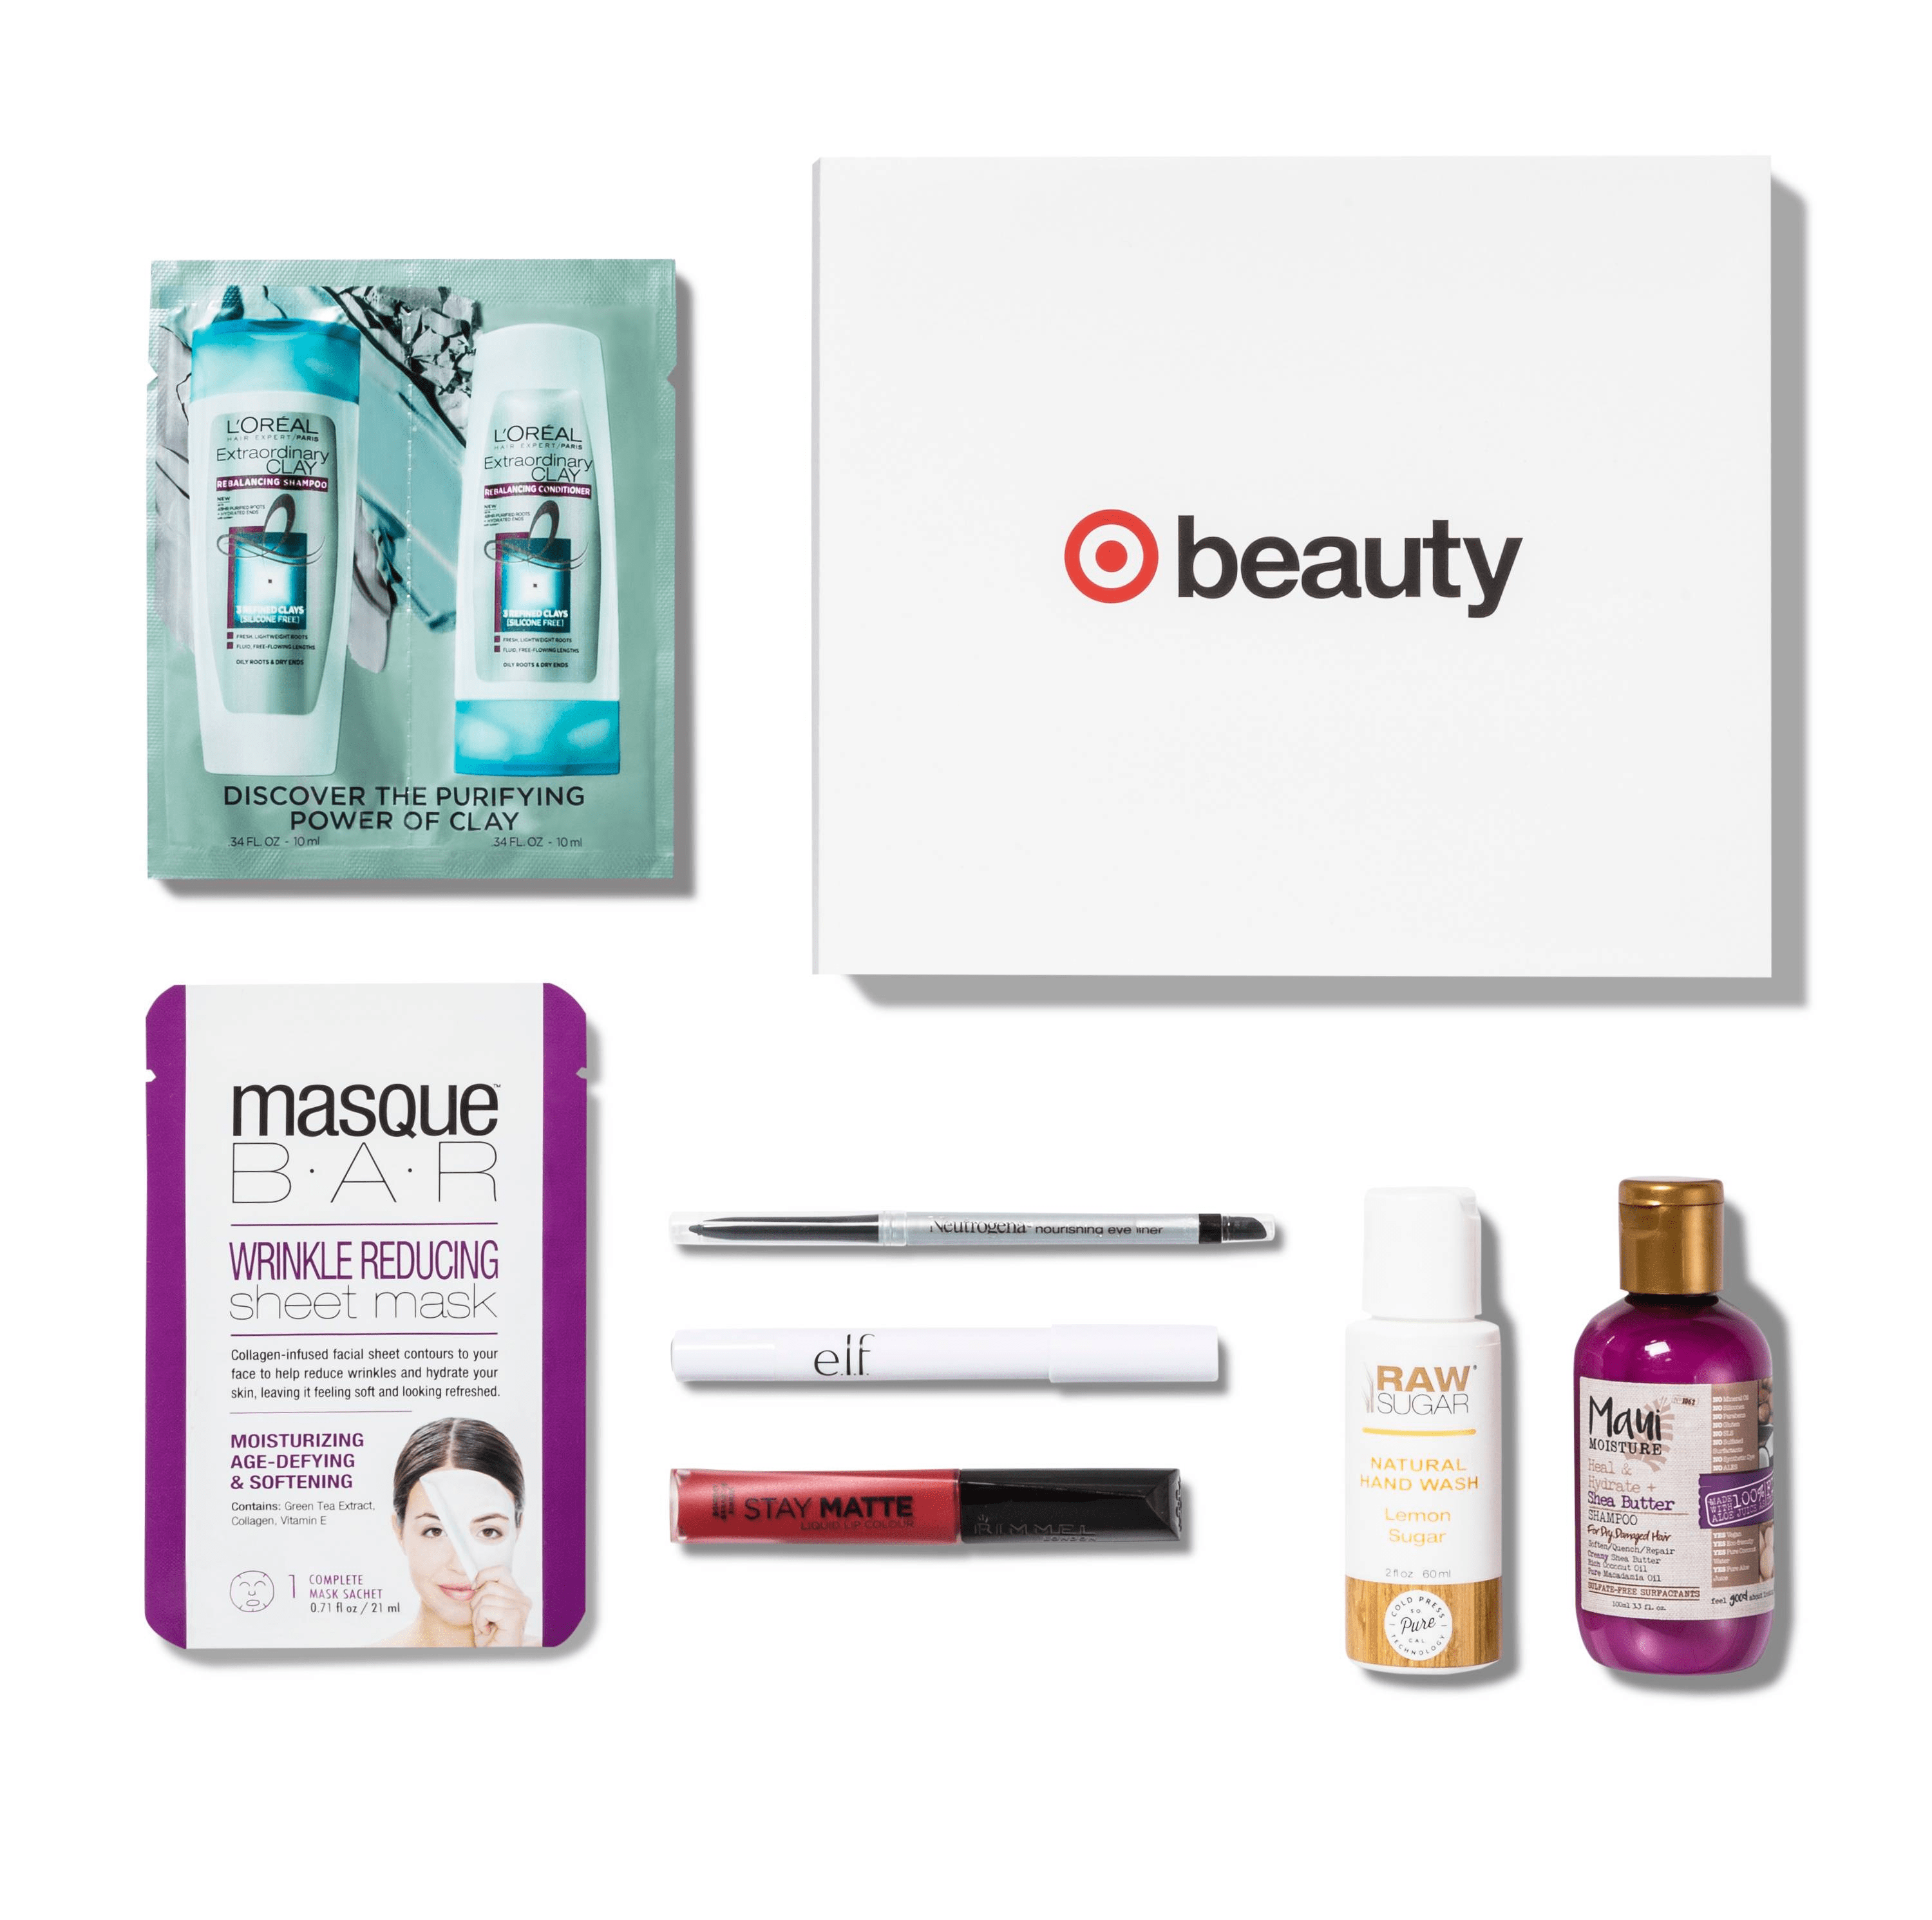 October 2017 Target Beauty Box Available Now!